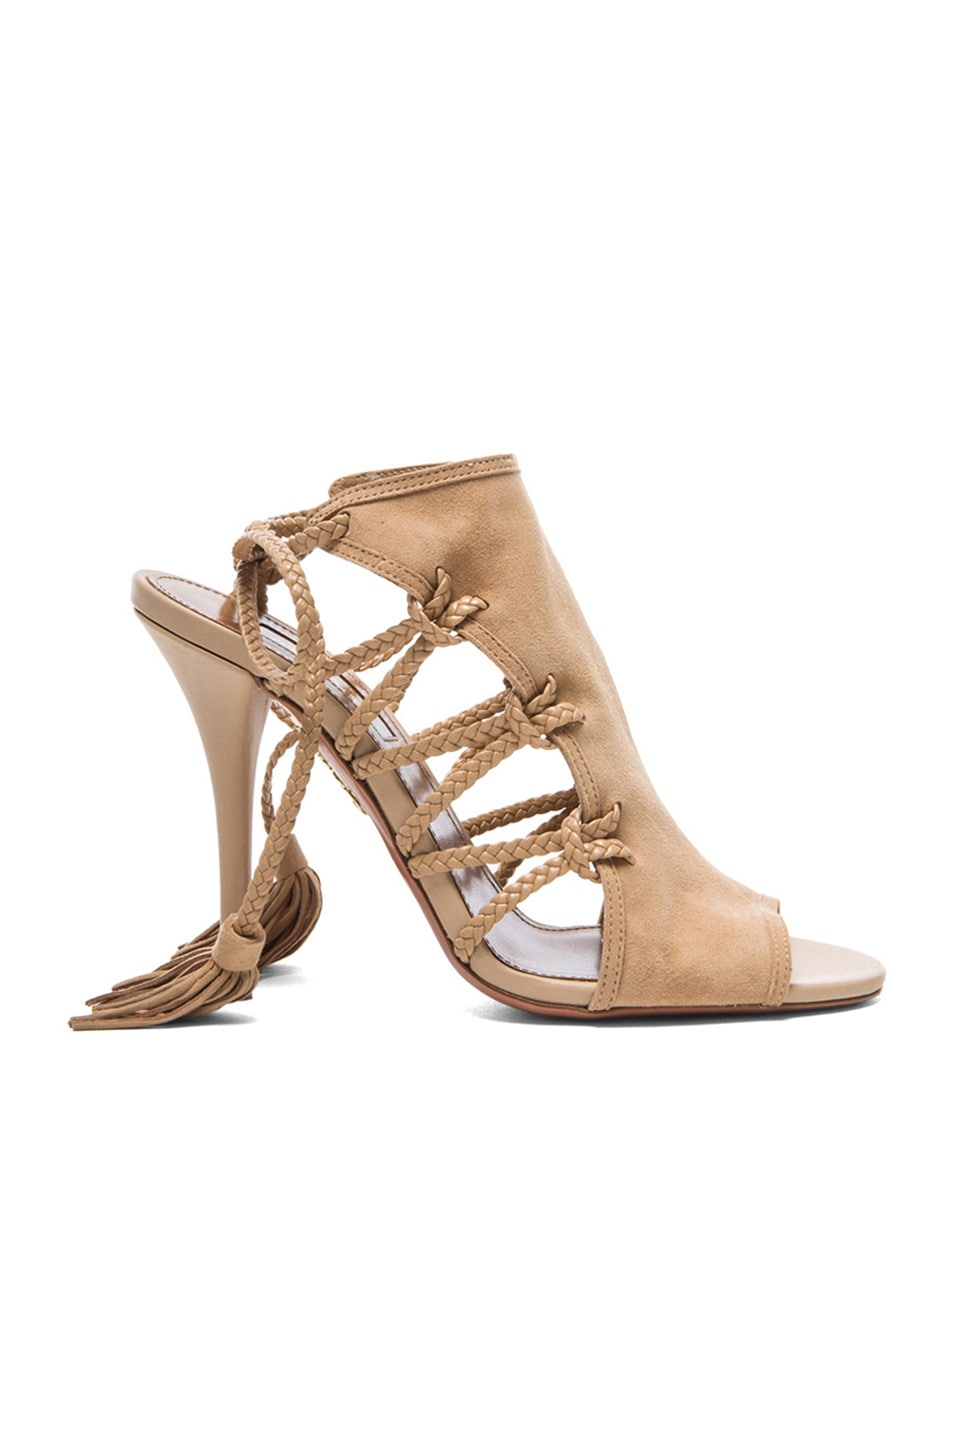 Image 1 of Aquazzura Sahara Suede Heels in Nude